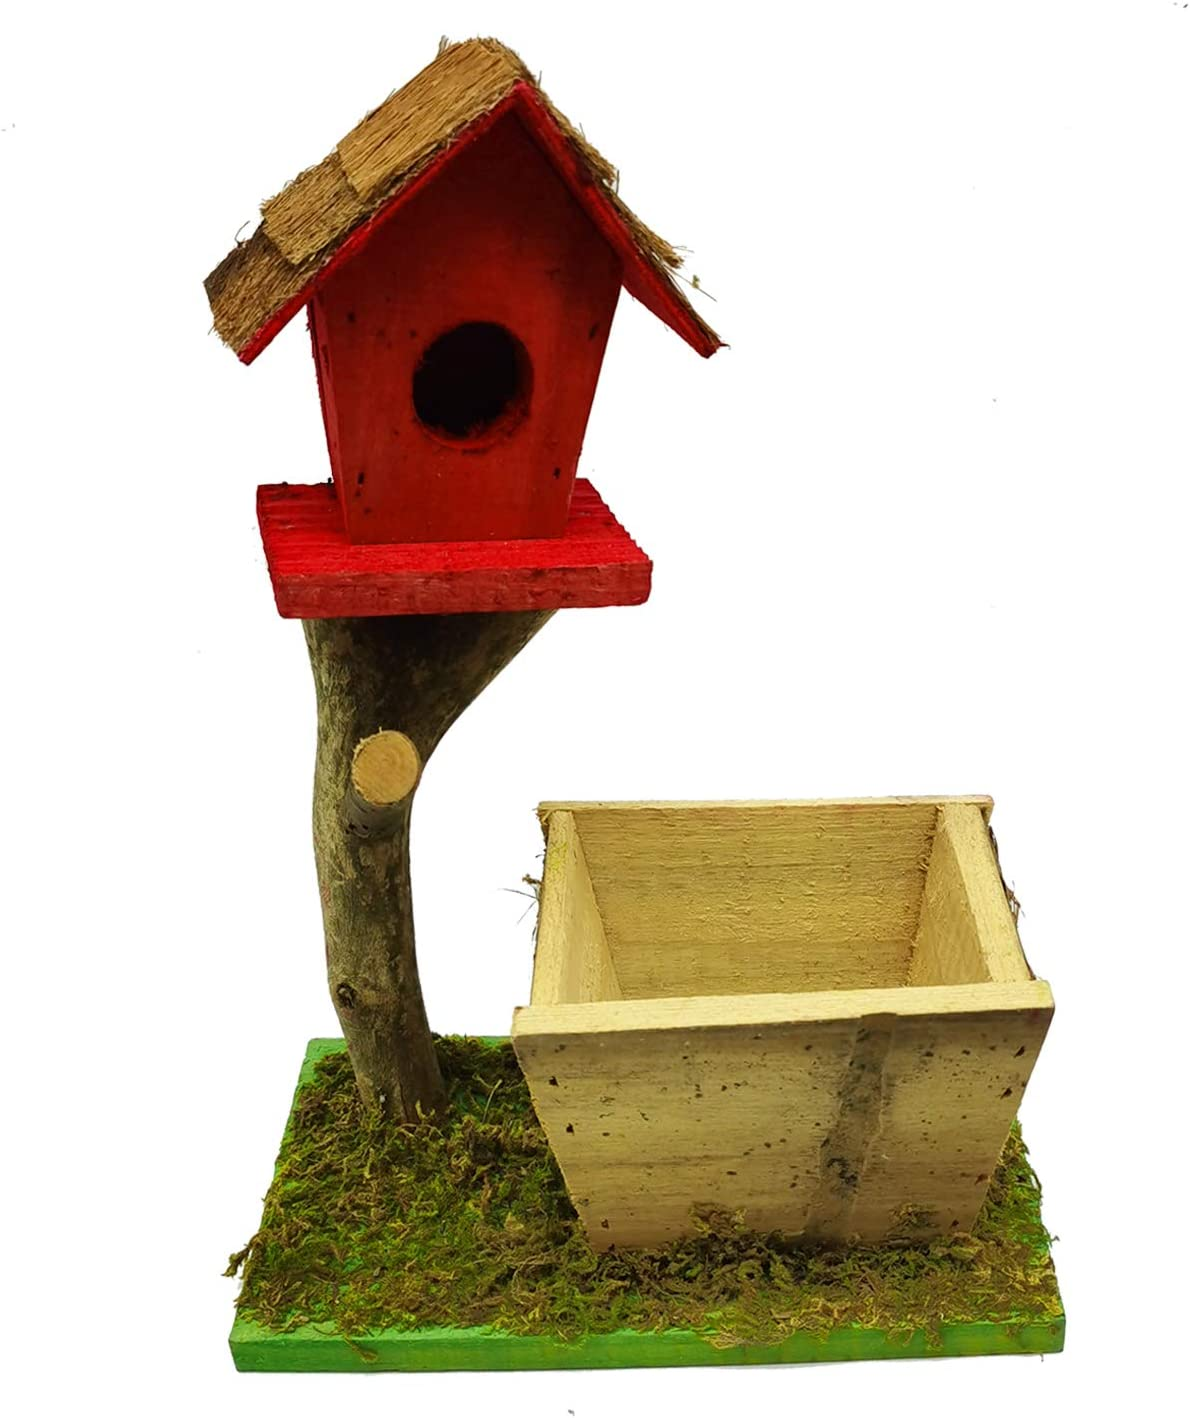 Hamiledyi Wooden Bird House Natural Wood Cash special price Ba High material Birdhouse Decorative